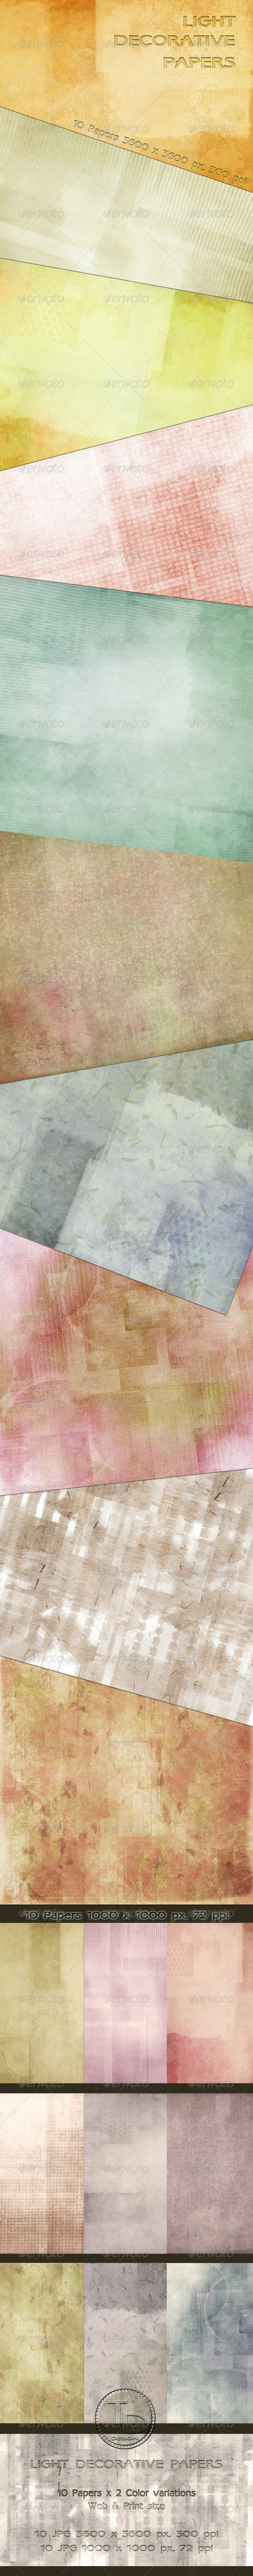 Light Decorative Papers - Paper Textures